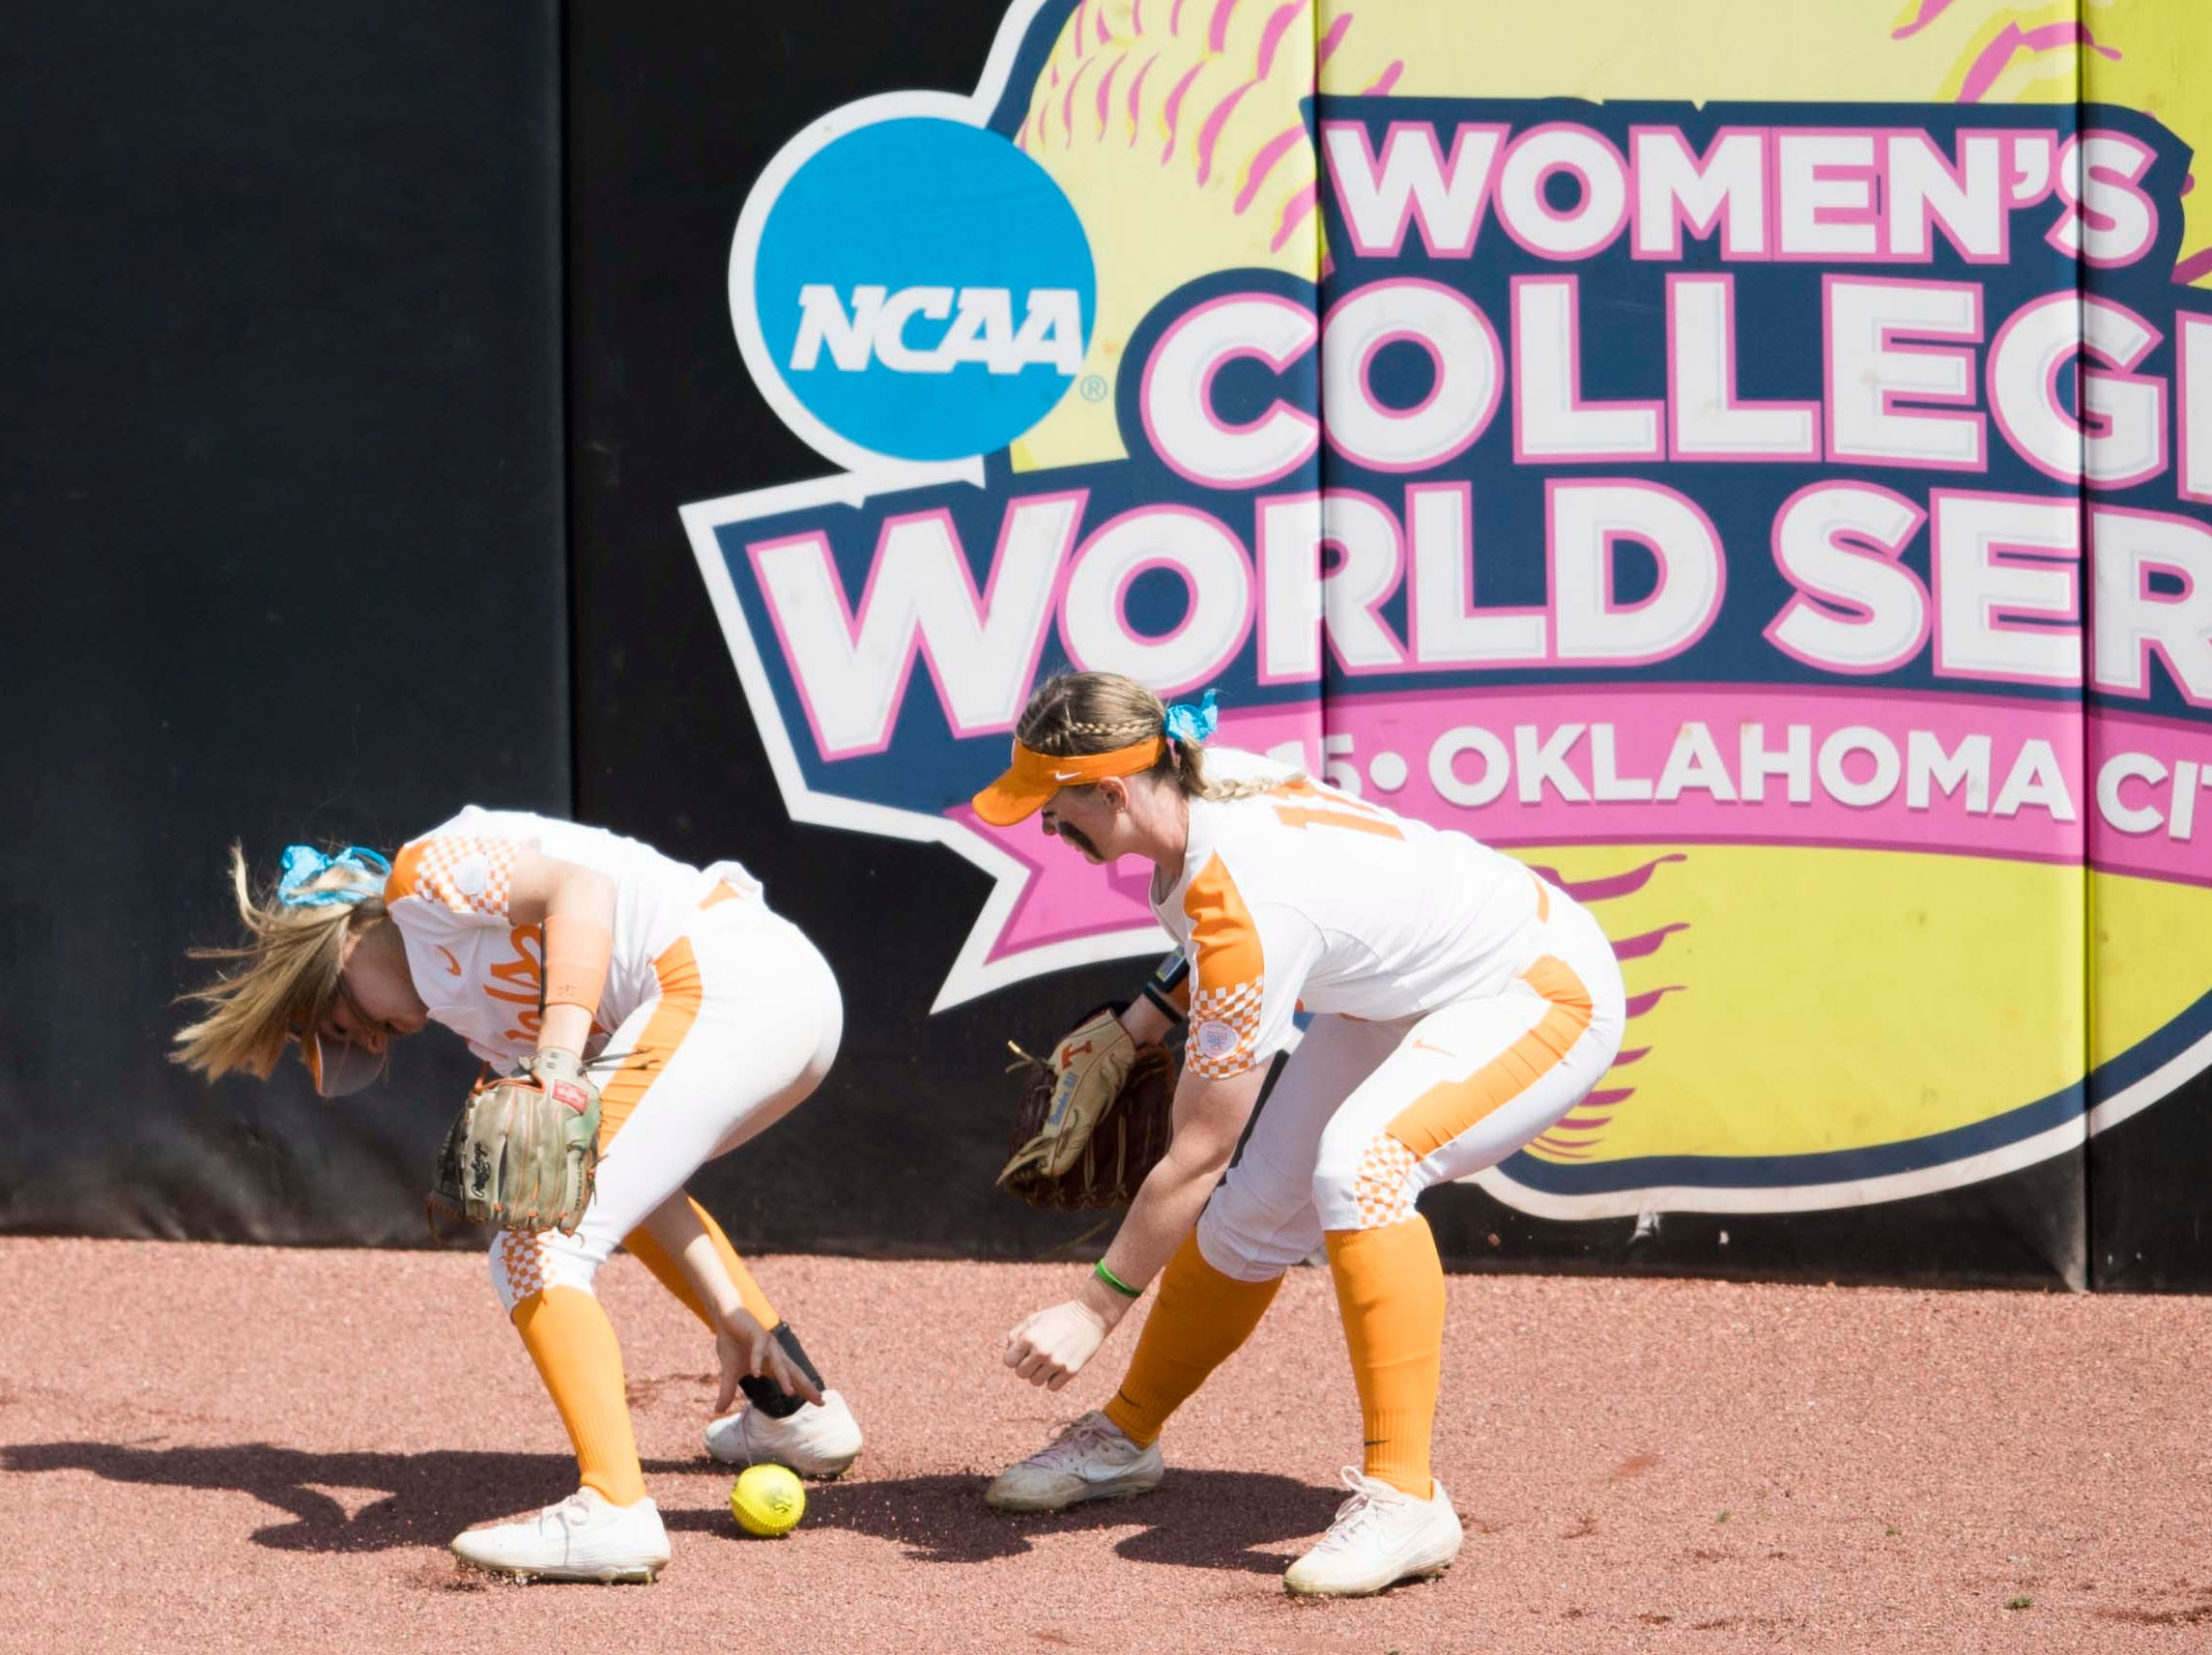 Tennessee outfielder Cailin Hannon (24) and Tennessee outfielder Haley Bearden (11) fumble for the ball during a Lady Vols softball game against Arkansas at Sherri Parker Lee stadium on University of Tennessee's campus in Knoxville Sunday, March 24, 2019. The Lady Vols defeated Arkansas.